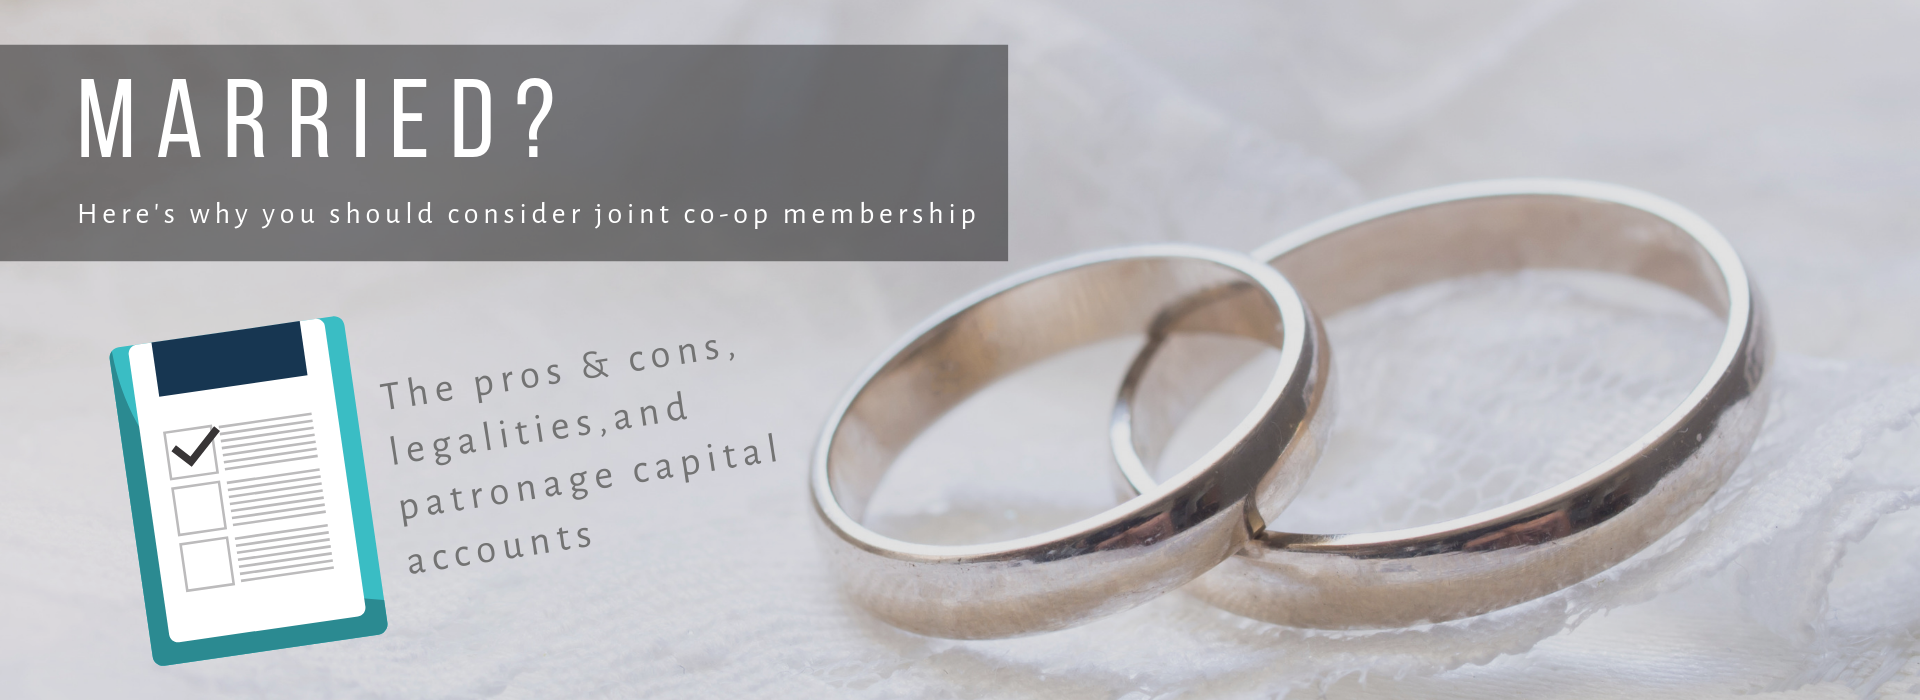 Why married couples should consider a joint membership